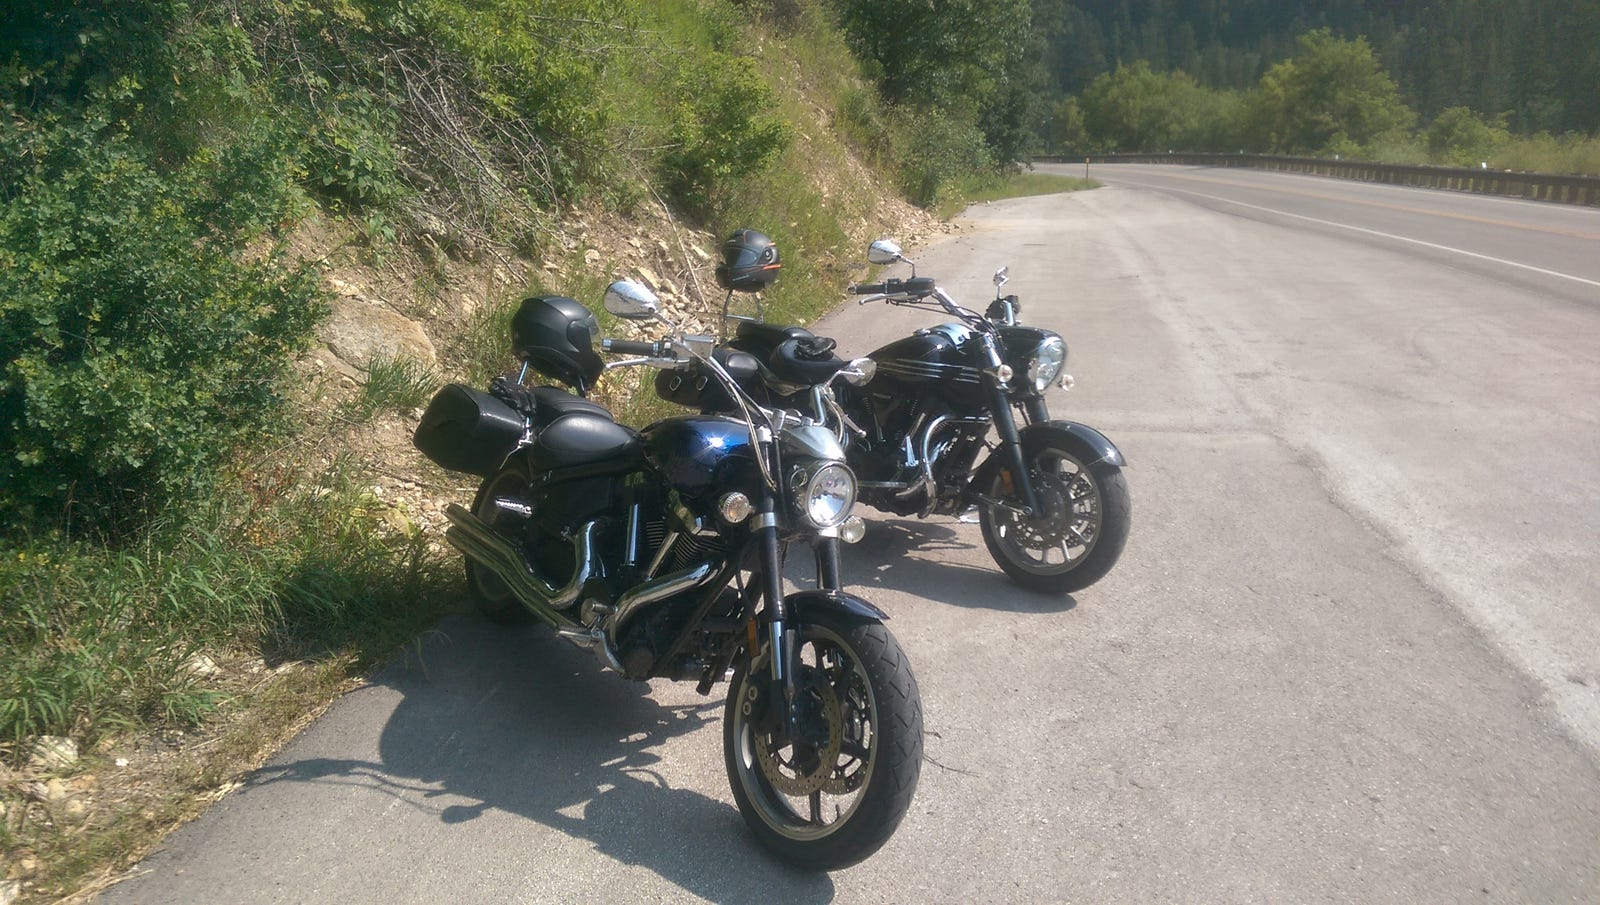 The black one. (Pics from our ride to Sturgis this year).